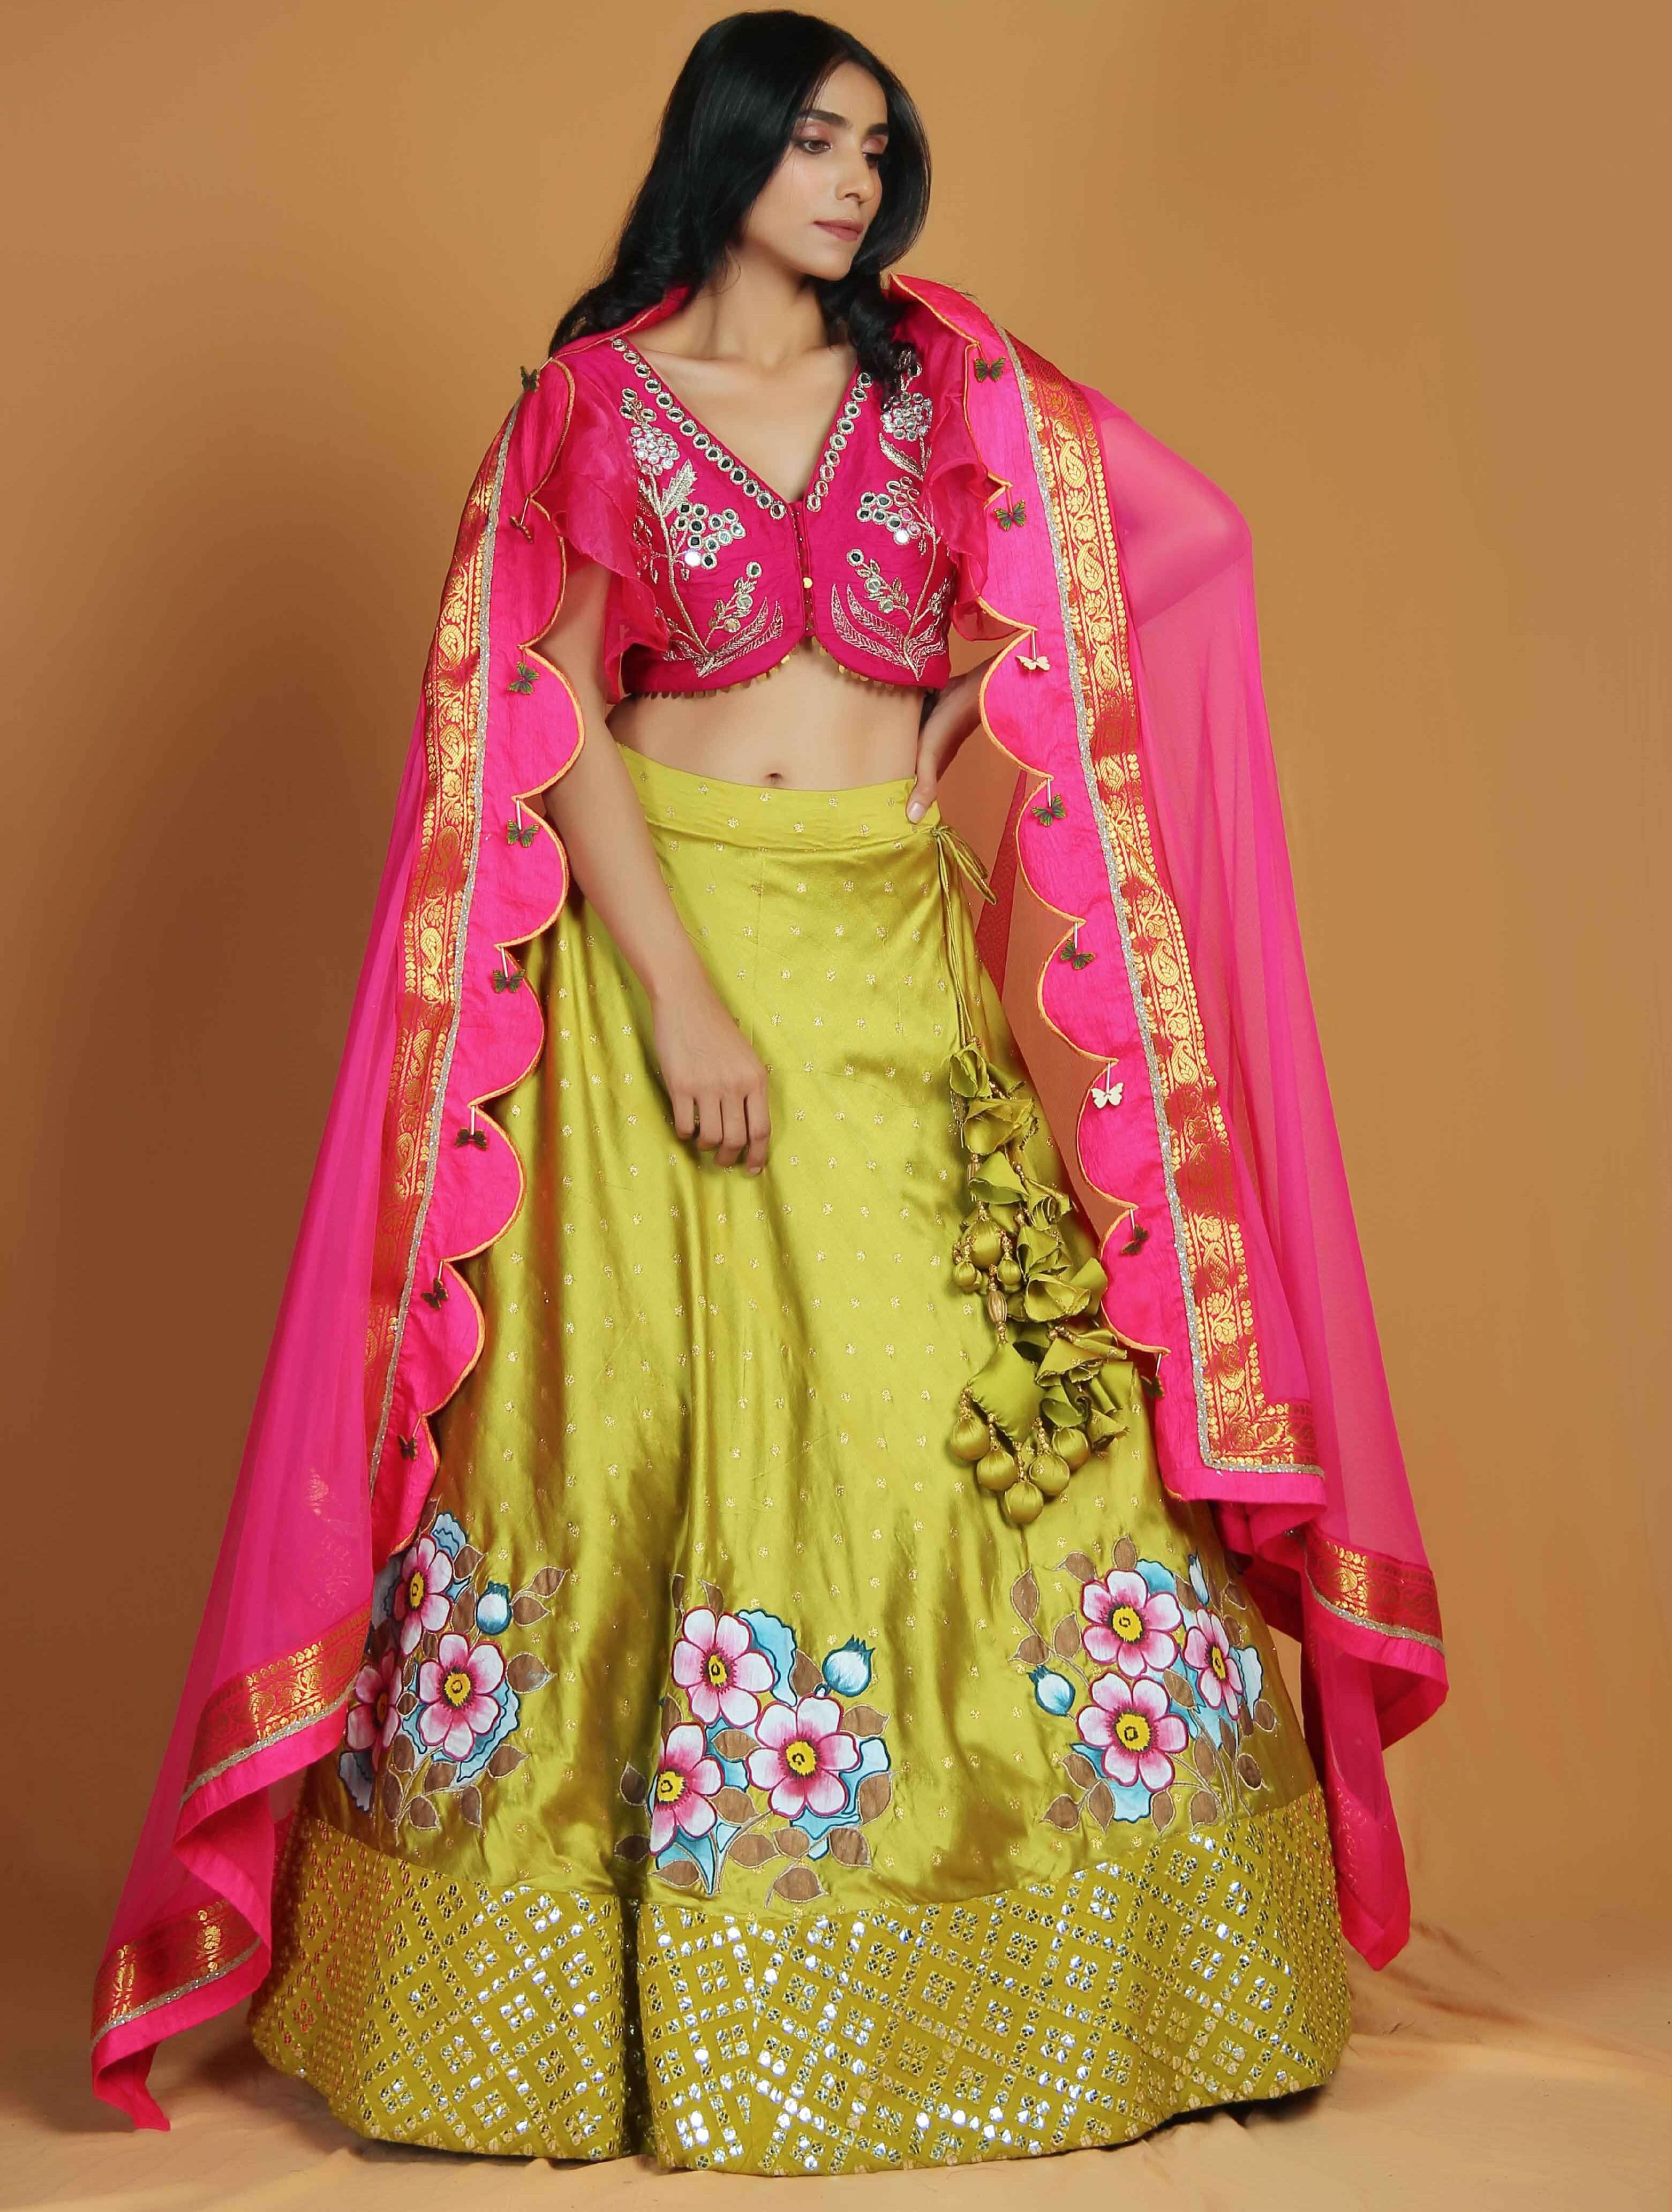 Bridal Lehenga at Pitampura, Delhi by Karigiri Studio